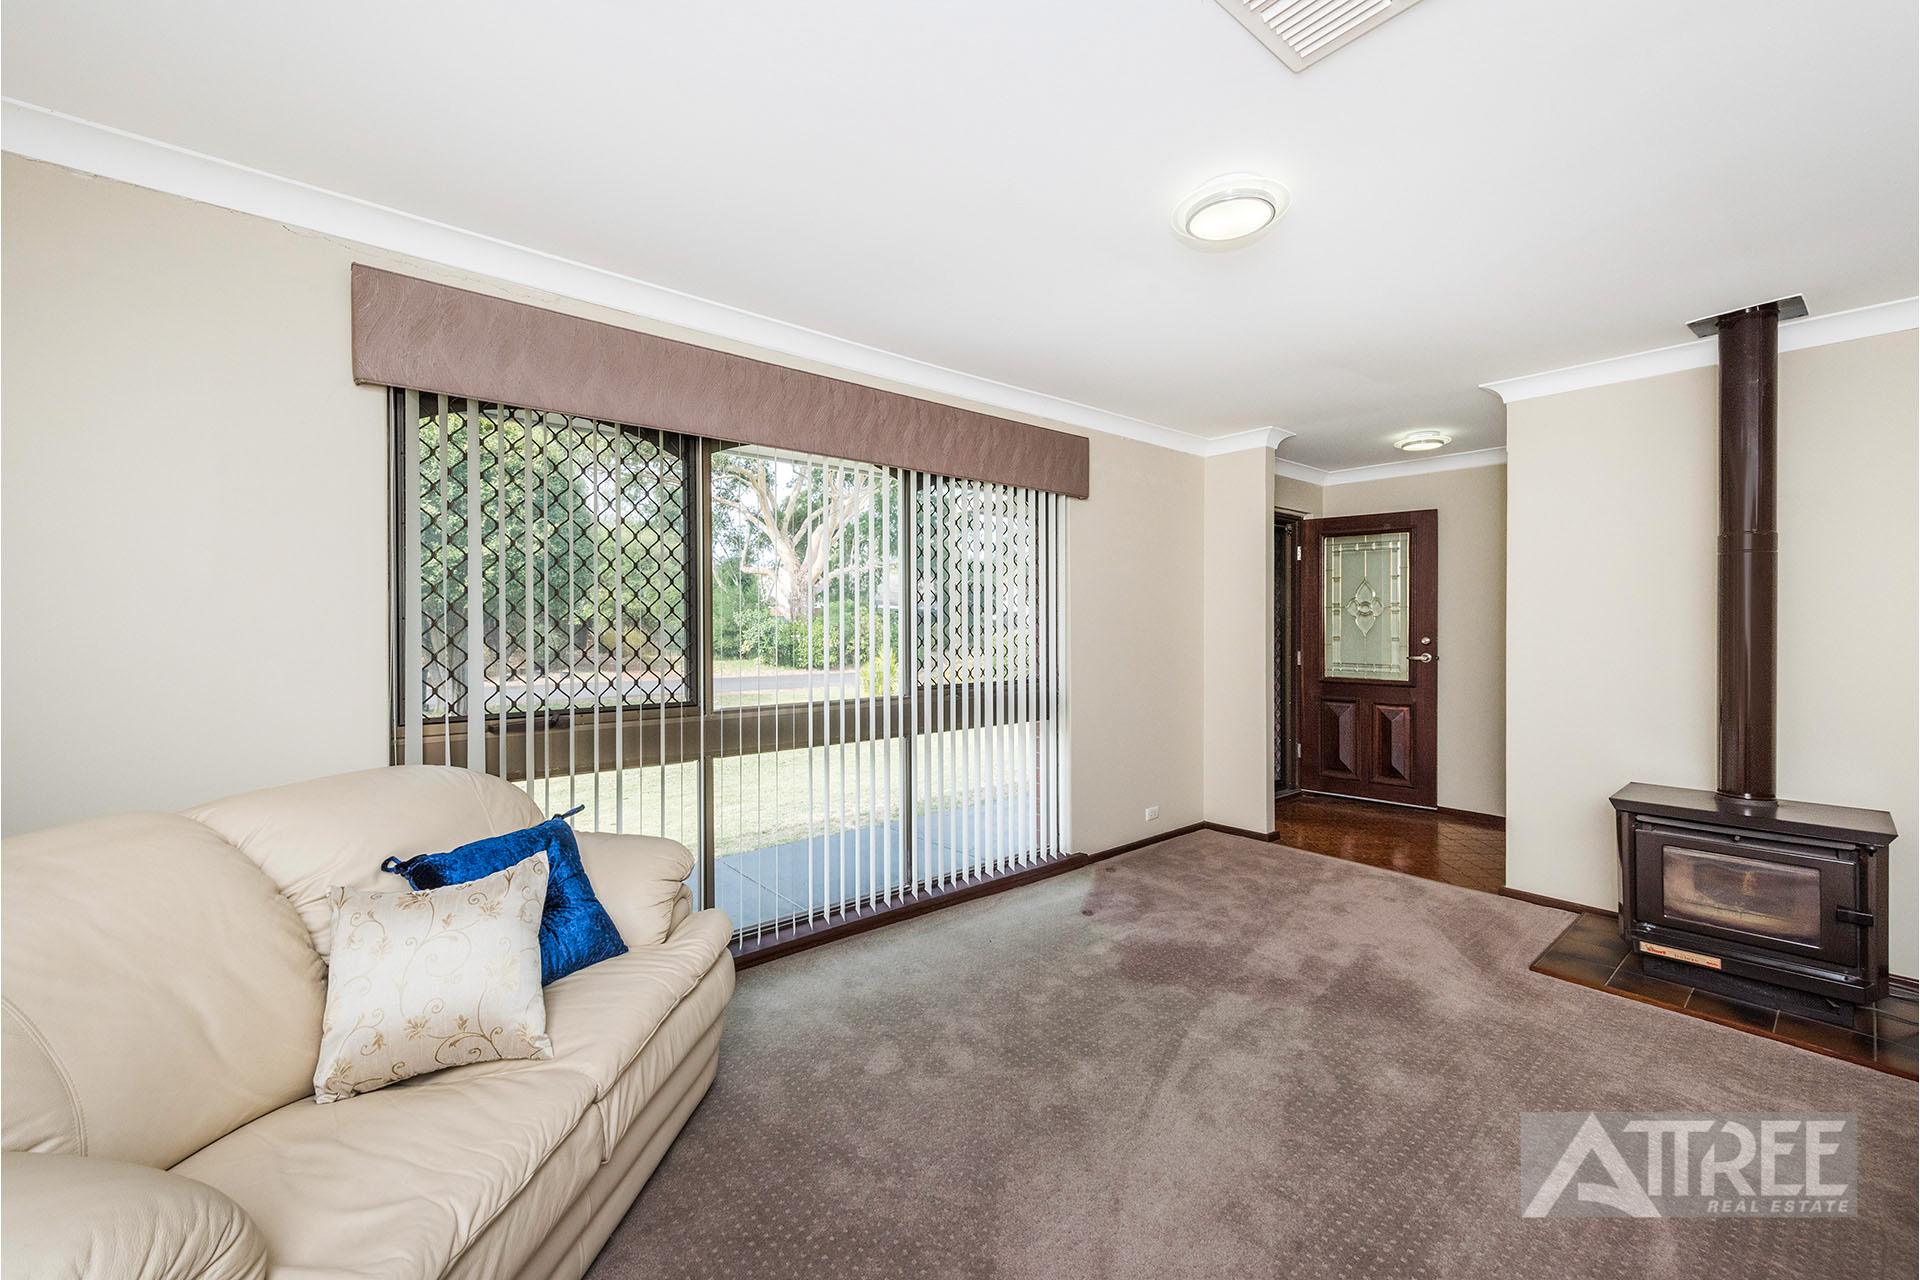 Property for sale in SOUTHERN RIVER, 363 Furley Road : Attree Real Estate